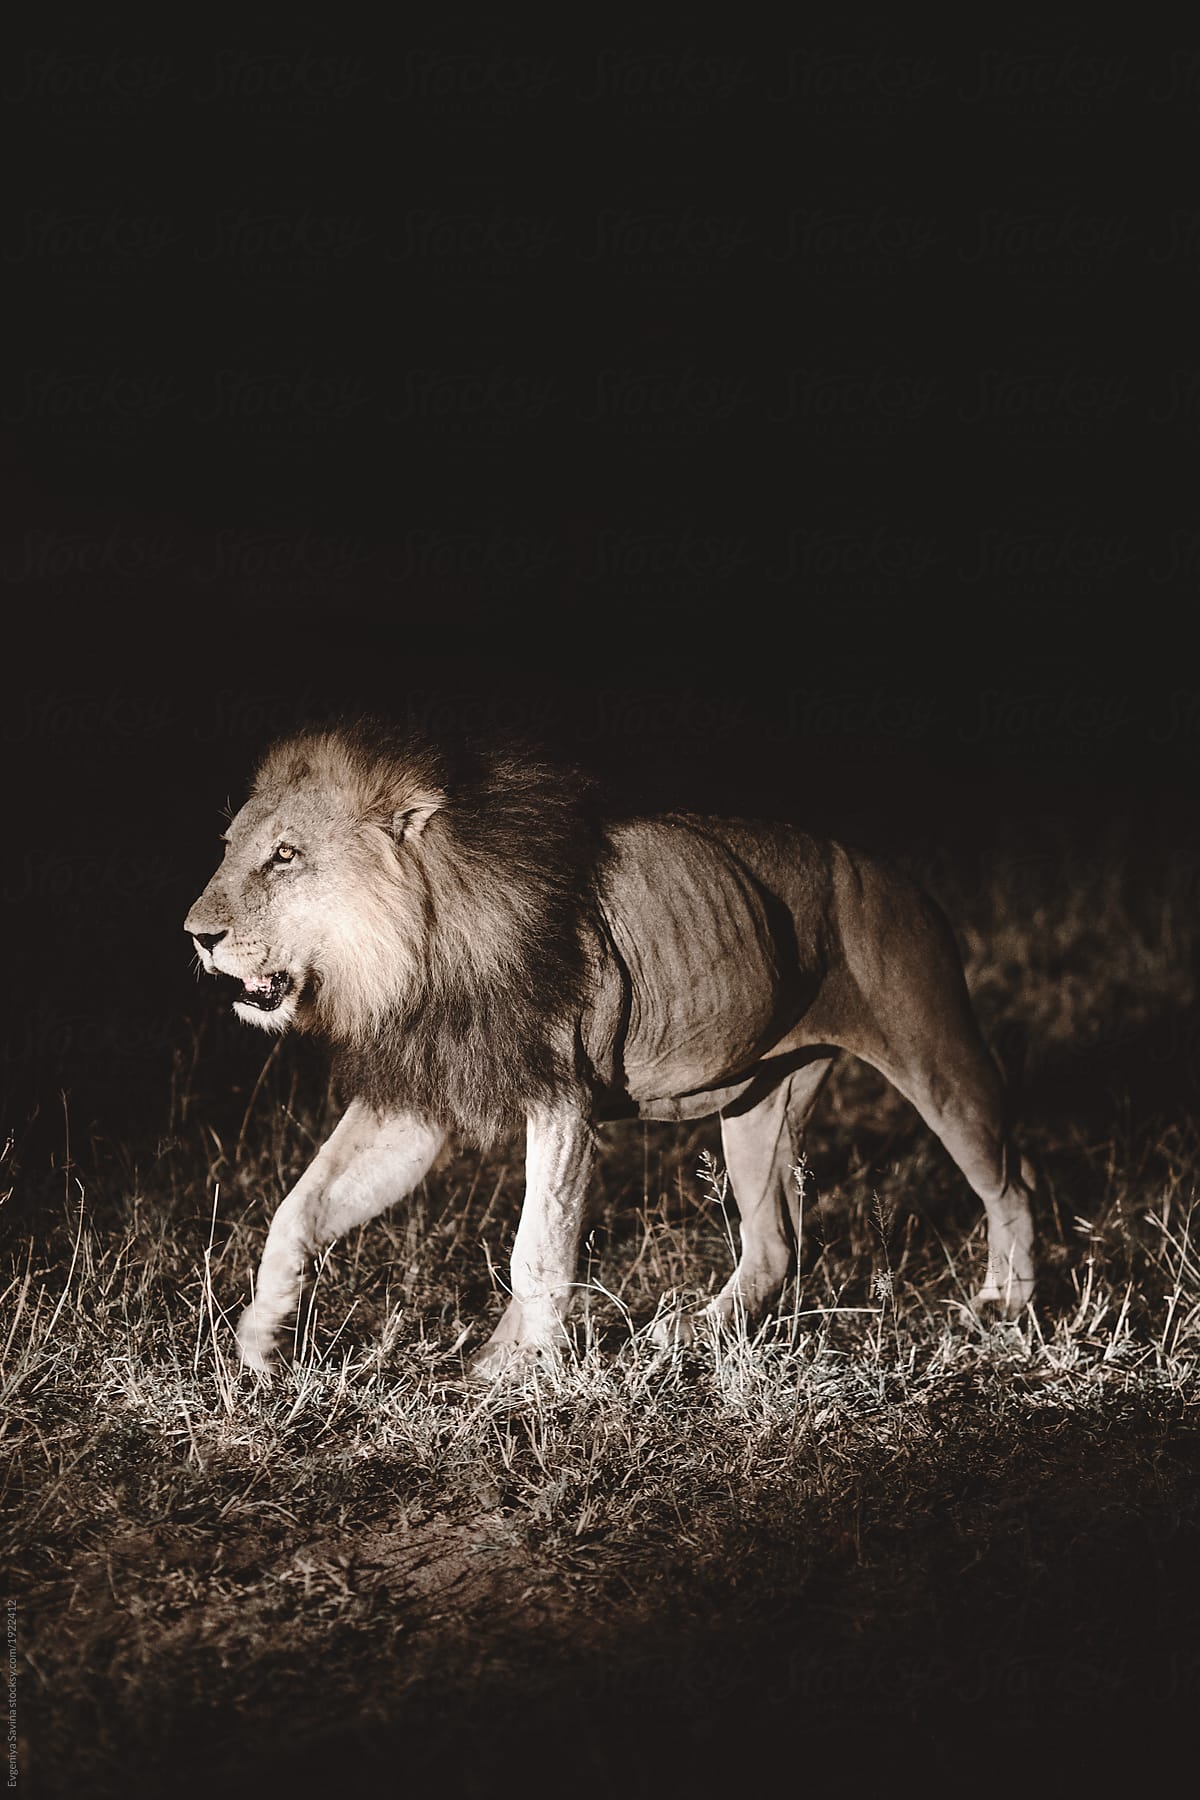 a close up portrait of a lion walking at night stocksy united